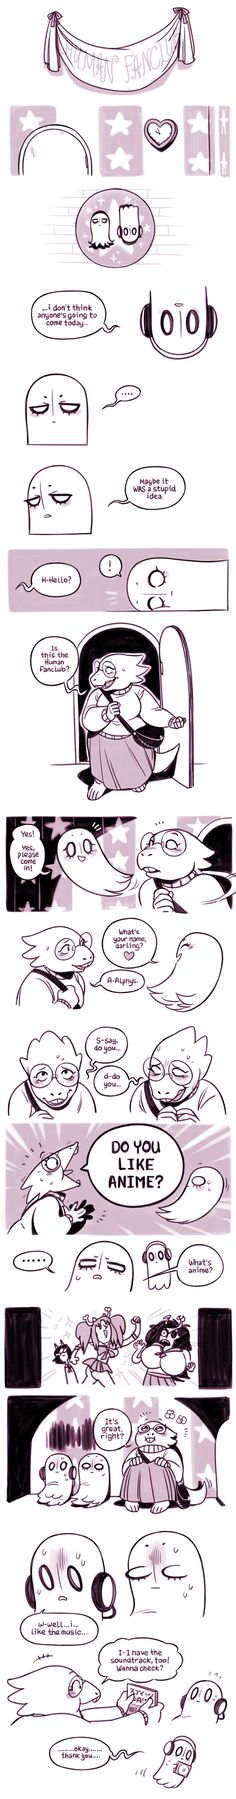 Undertale, Napstablook and Mettaton, also Alphys and Vriska, part 3